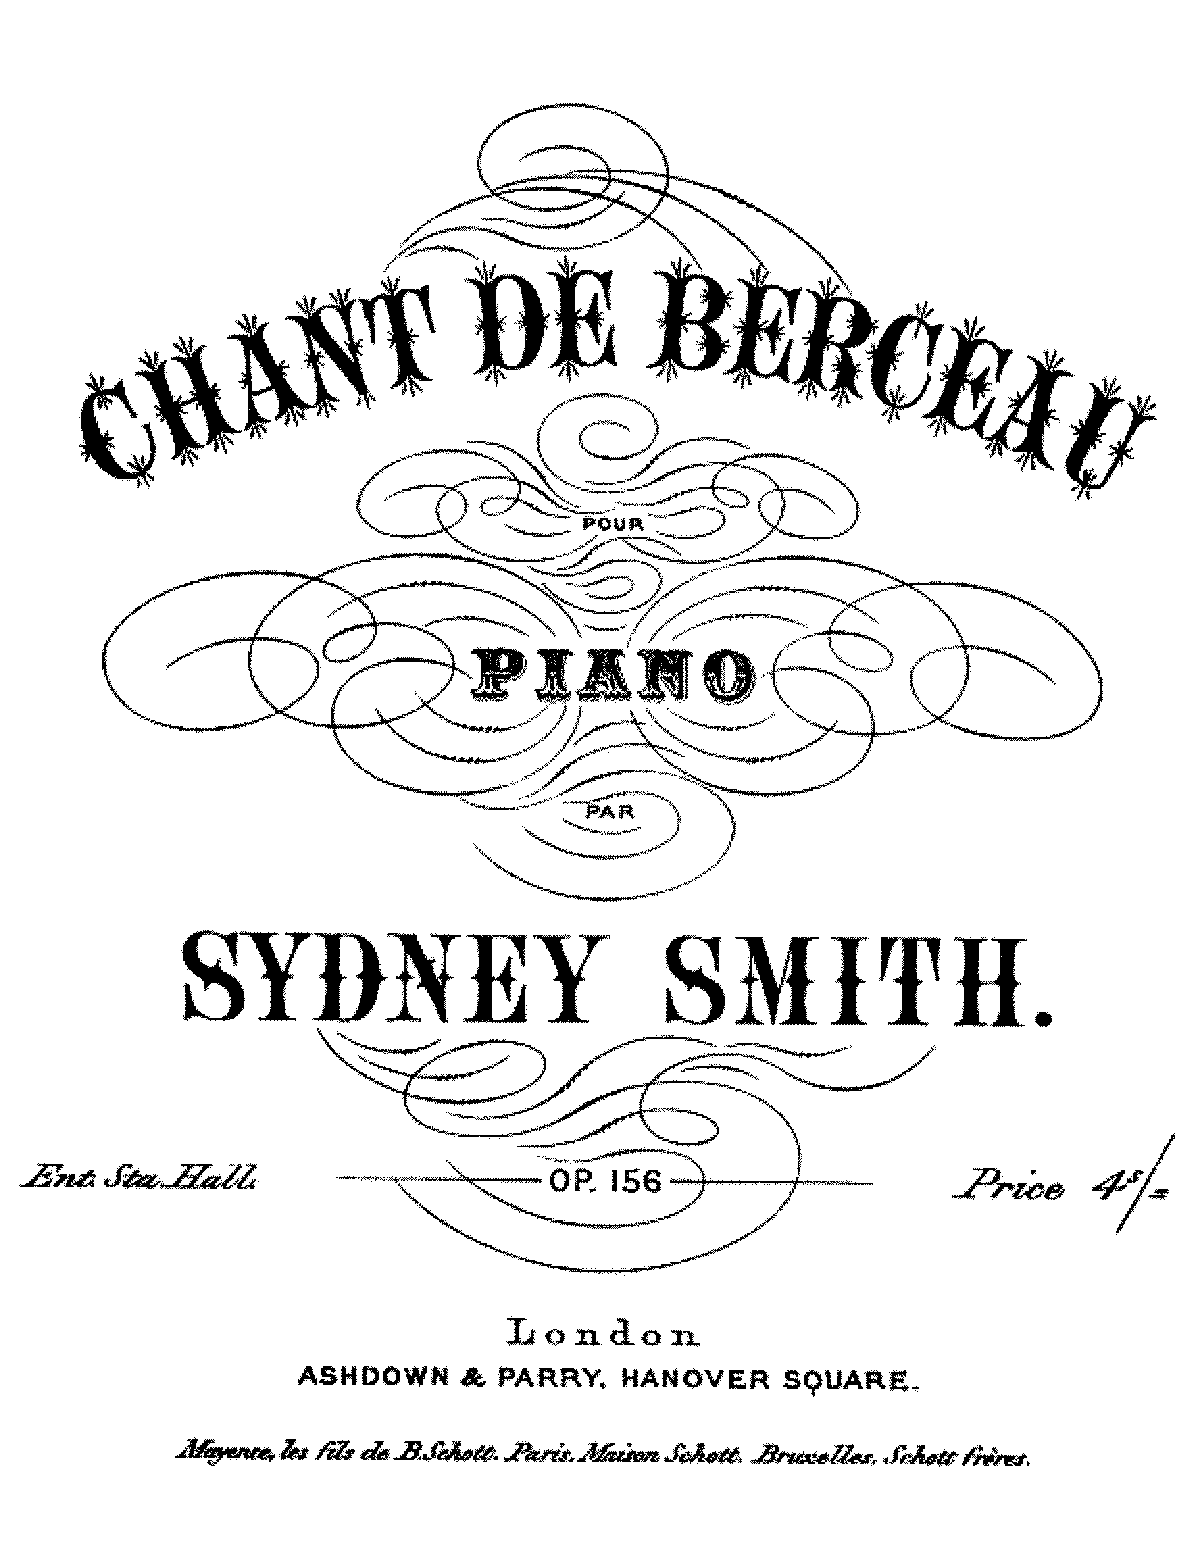 Smith, Sydney op156 chant de berceau.pdf